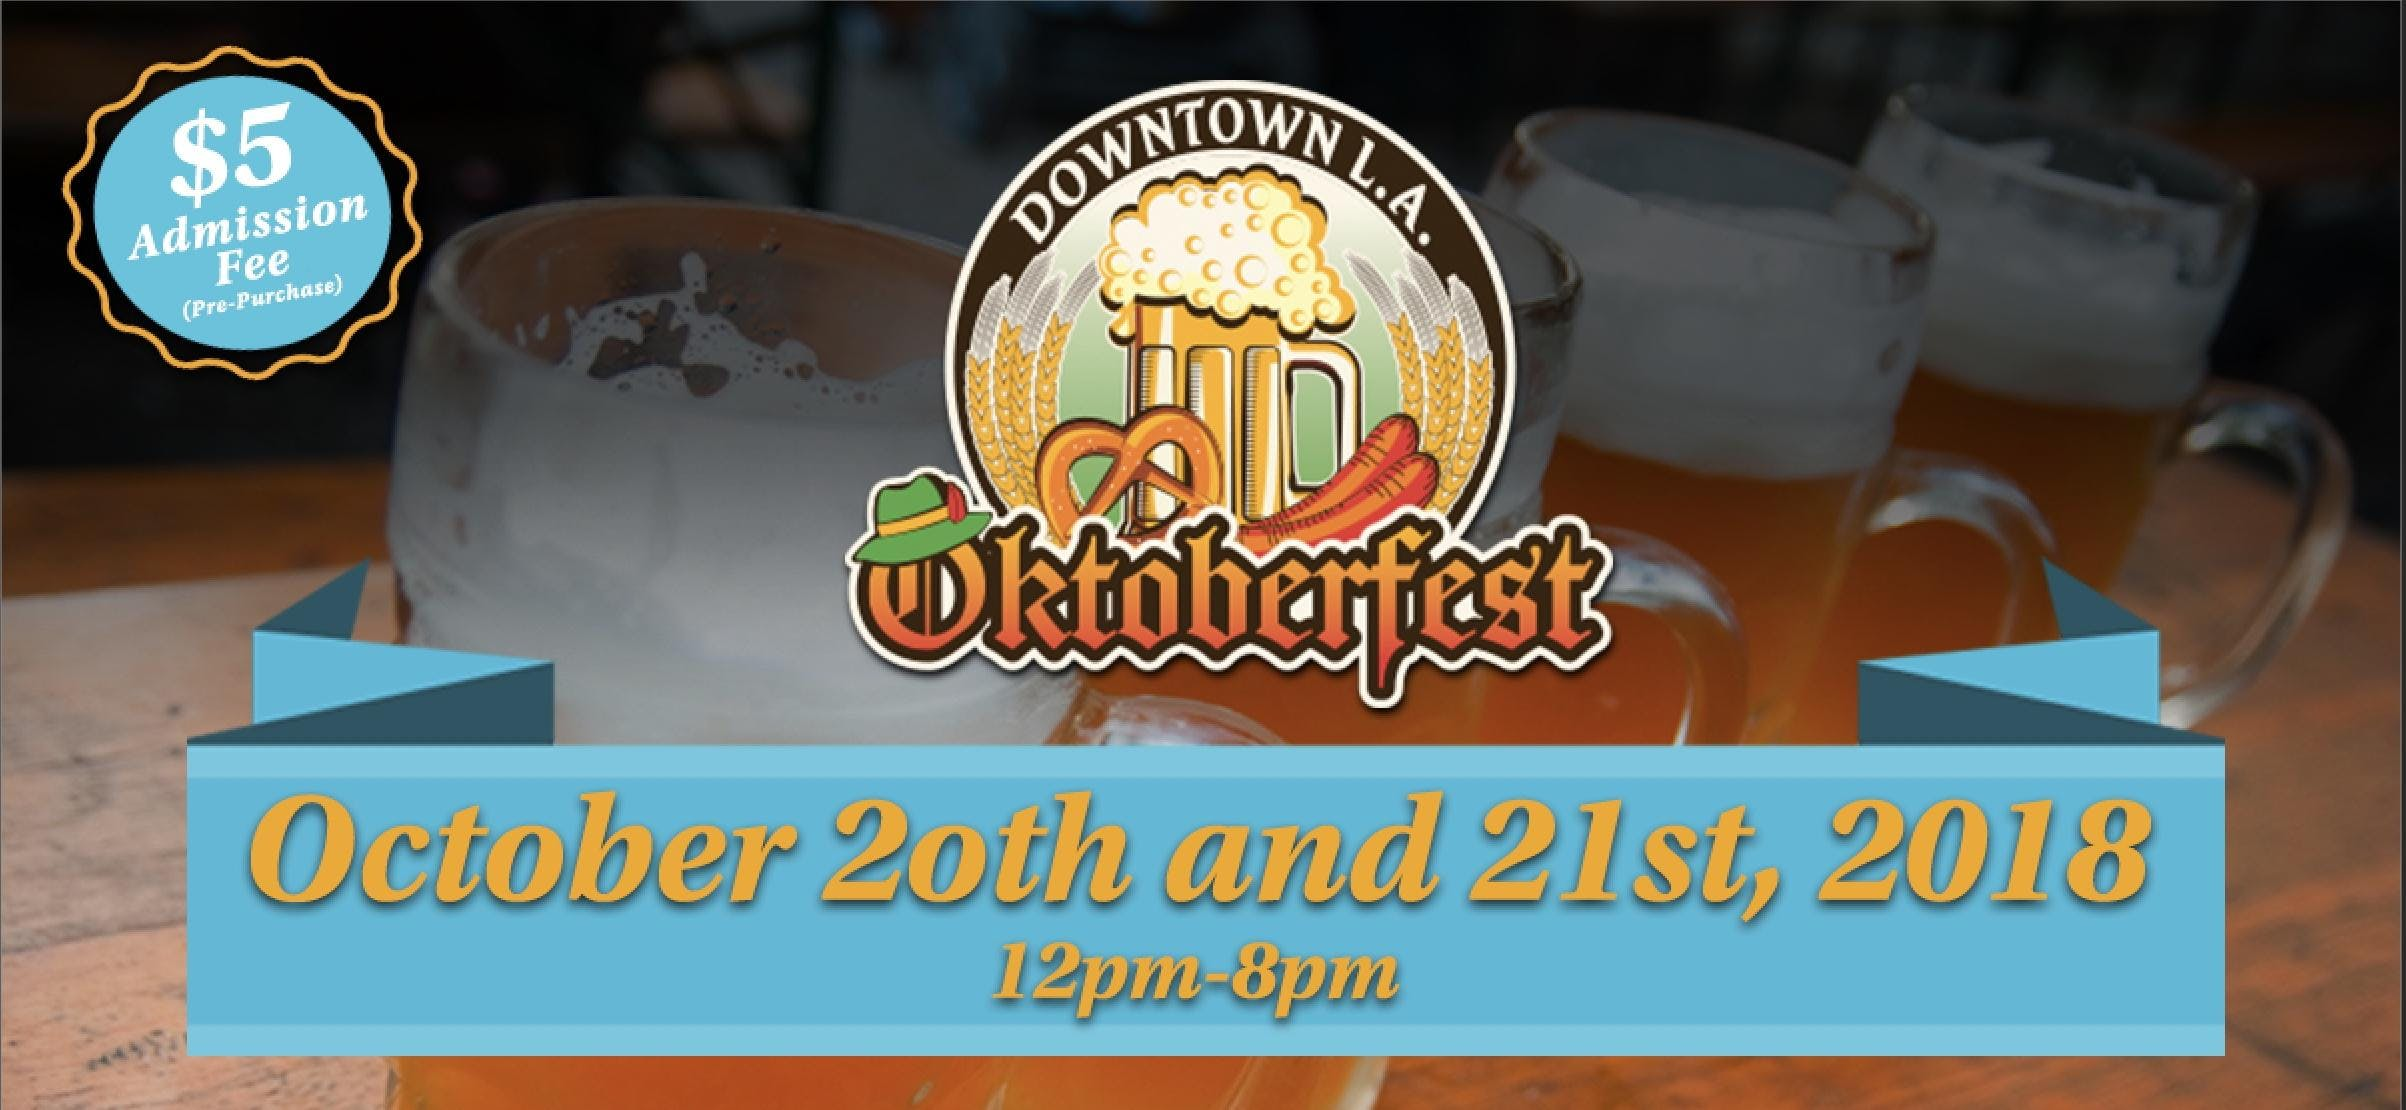 Oktoberfest DTLA- Beer, Food & Live Music!